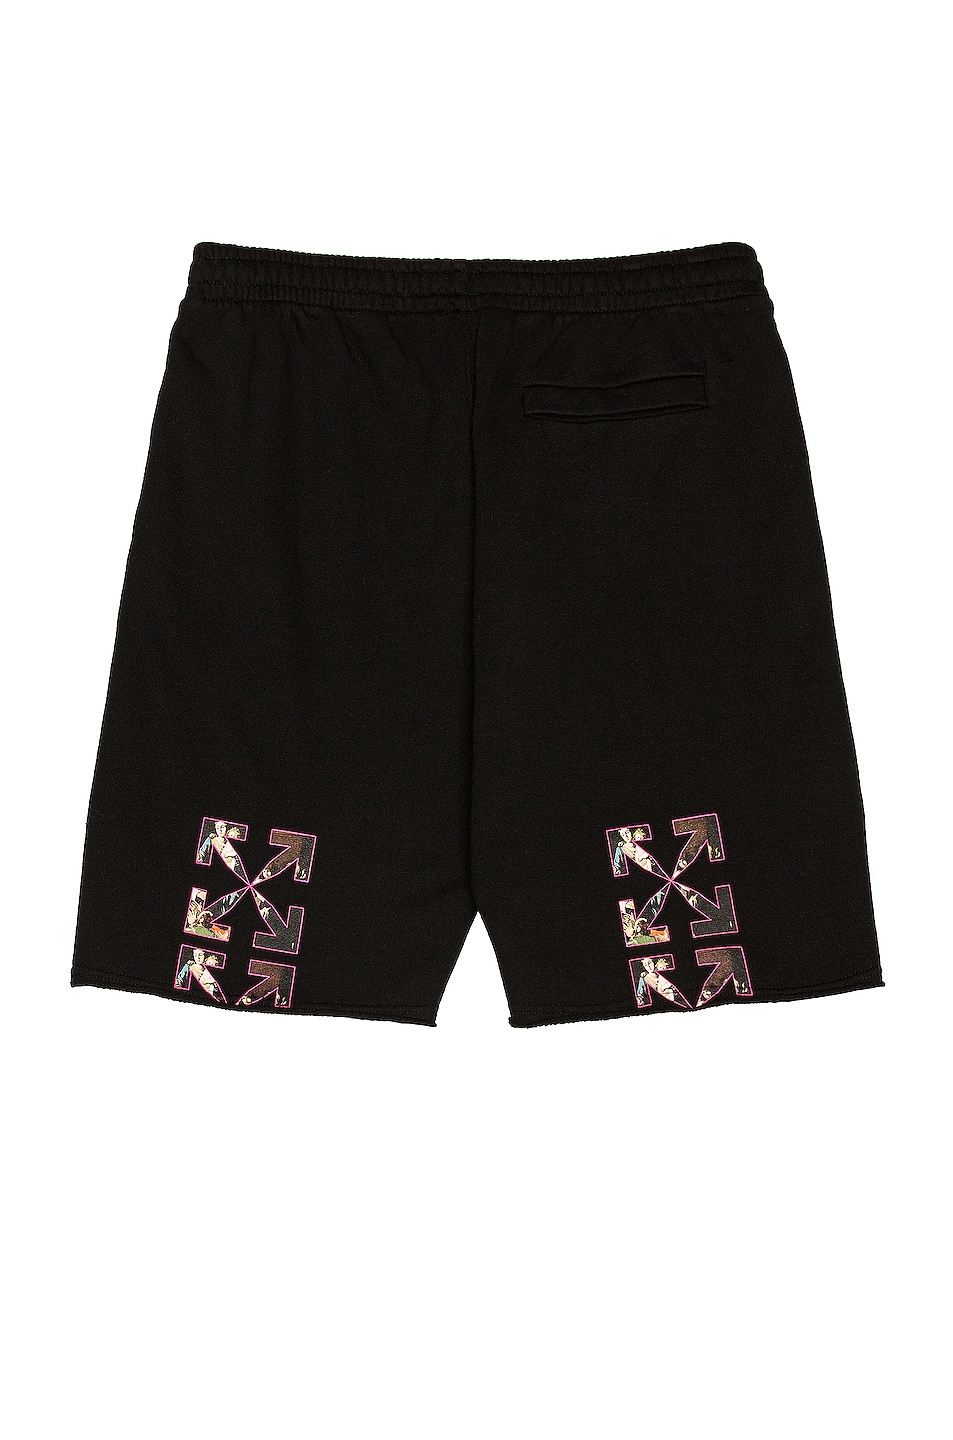 Image 1 of OFF-WHITE Sprayed Caravaggio Sweatshort in Black & White